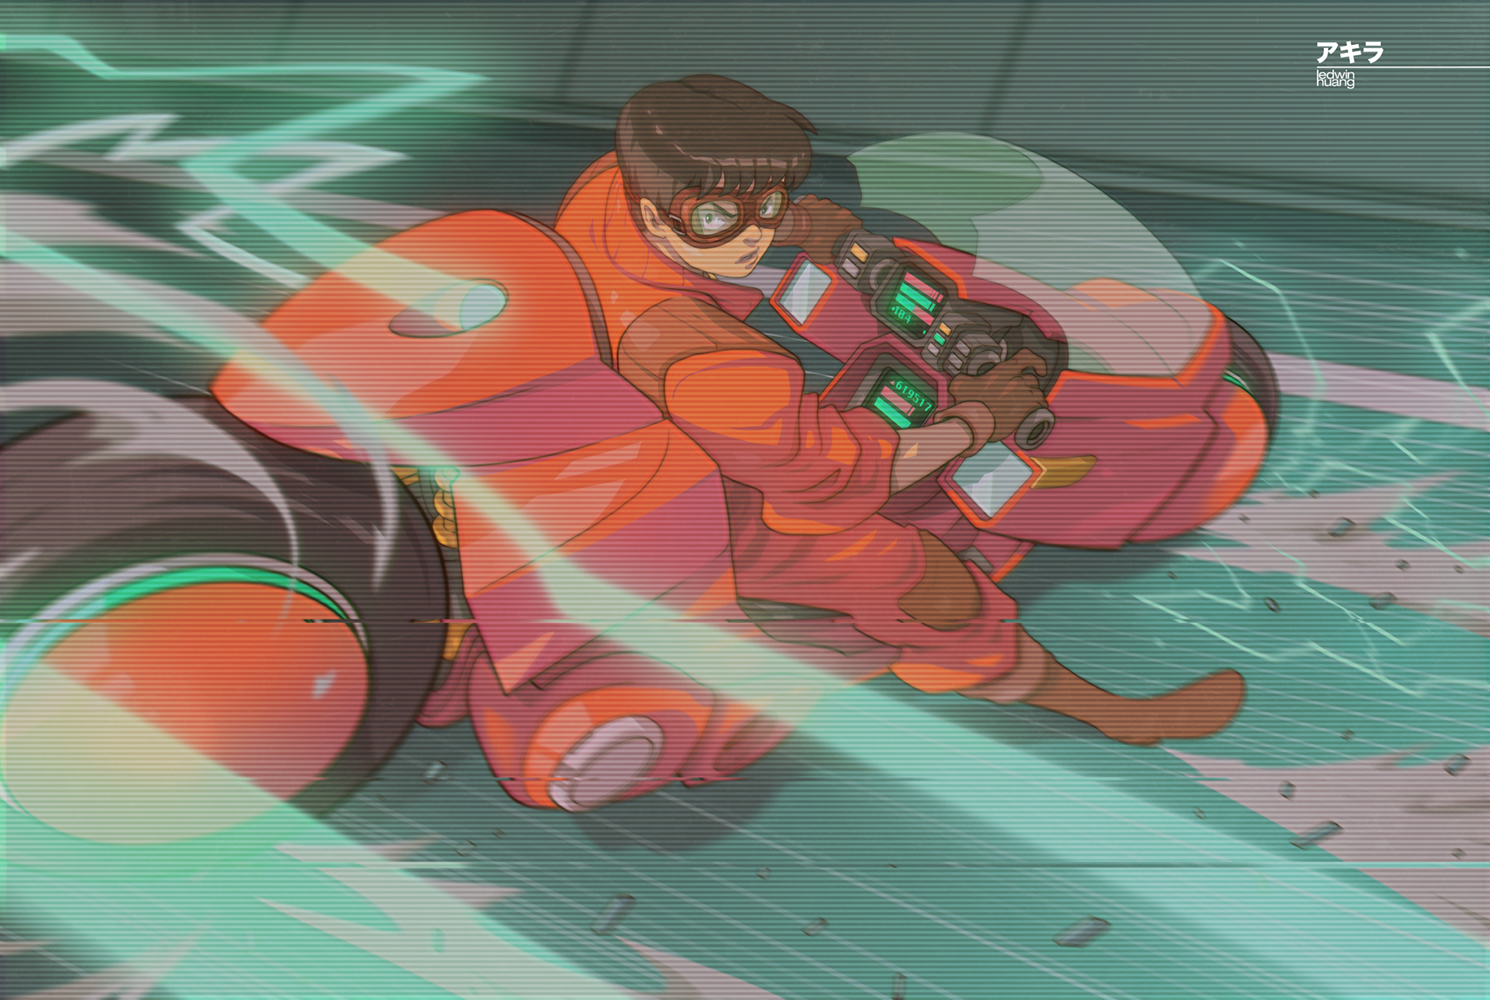 Kaneda (Retro Version) by edwinhuang